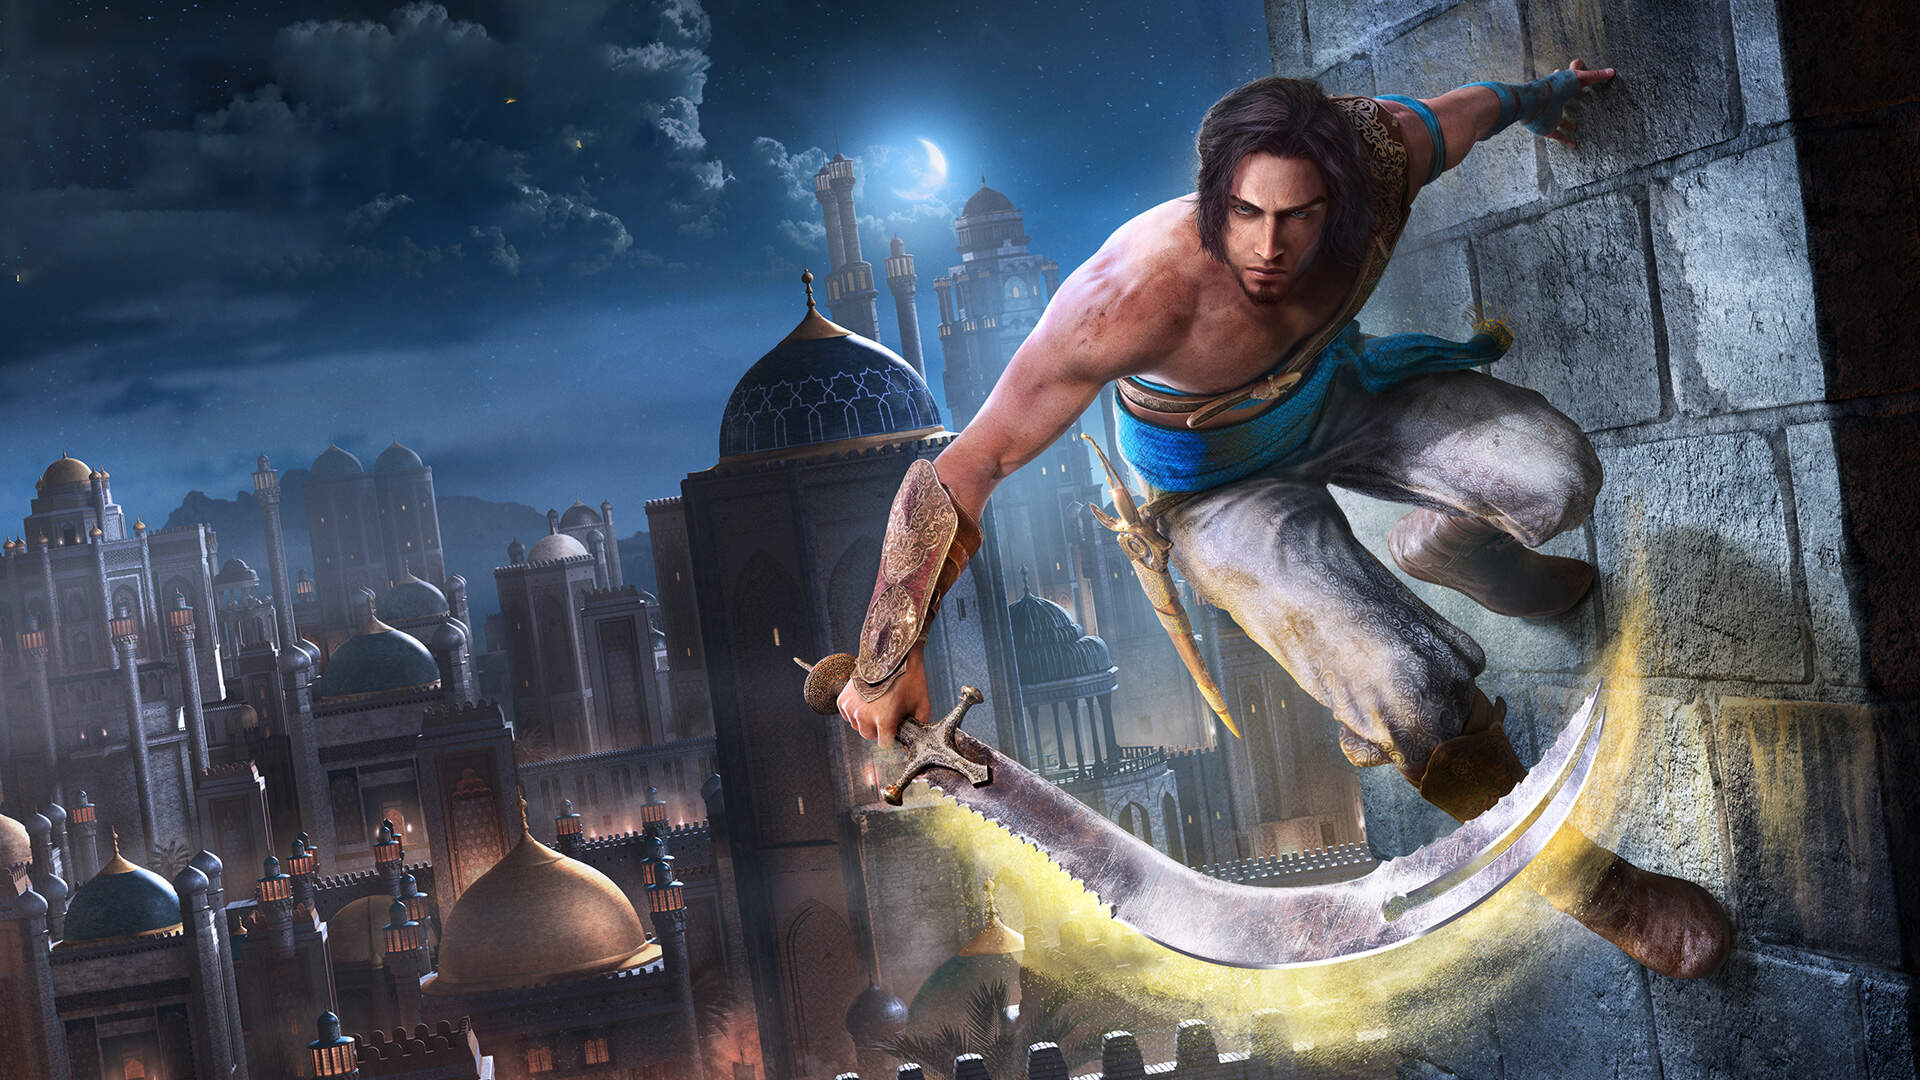 Prince of Persia: The Sands of Time Remake Brings the Prince Back to His Throne